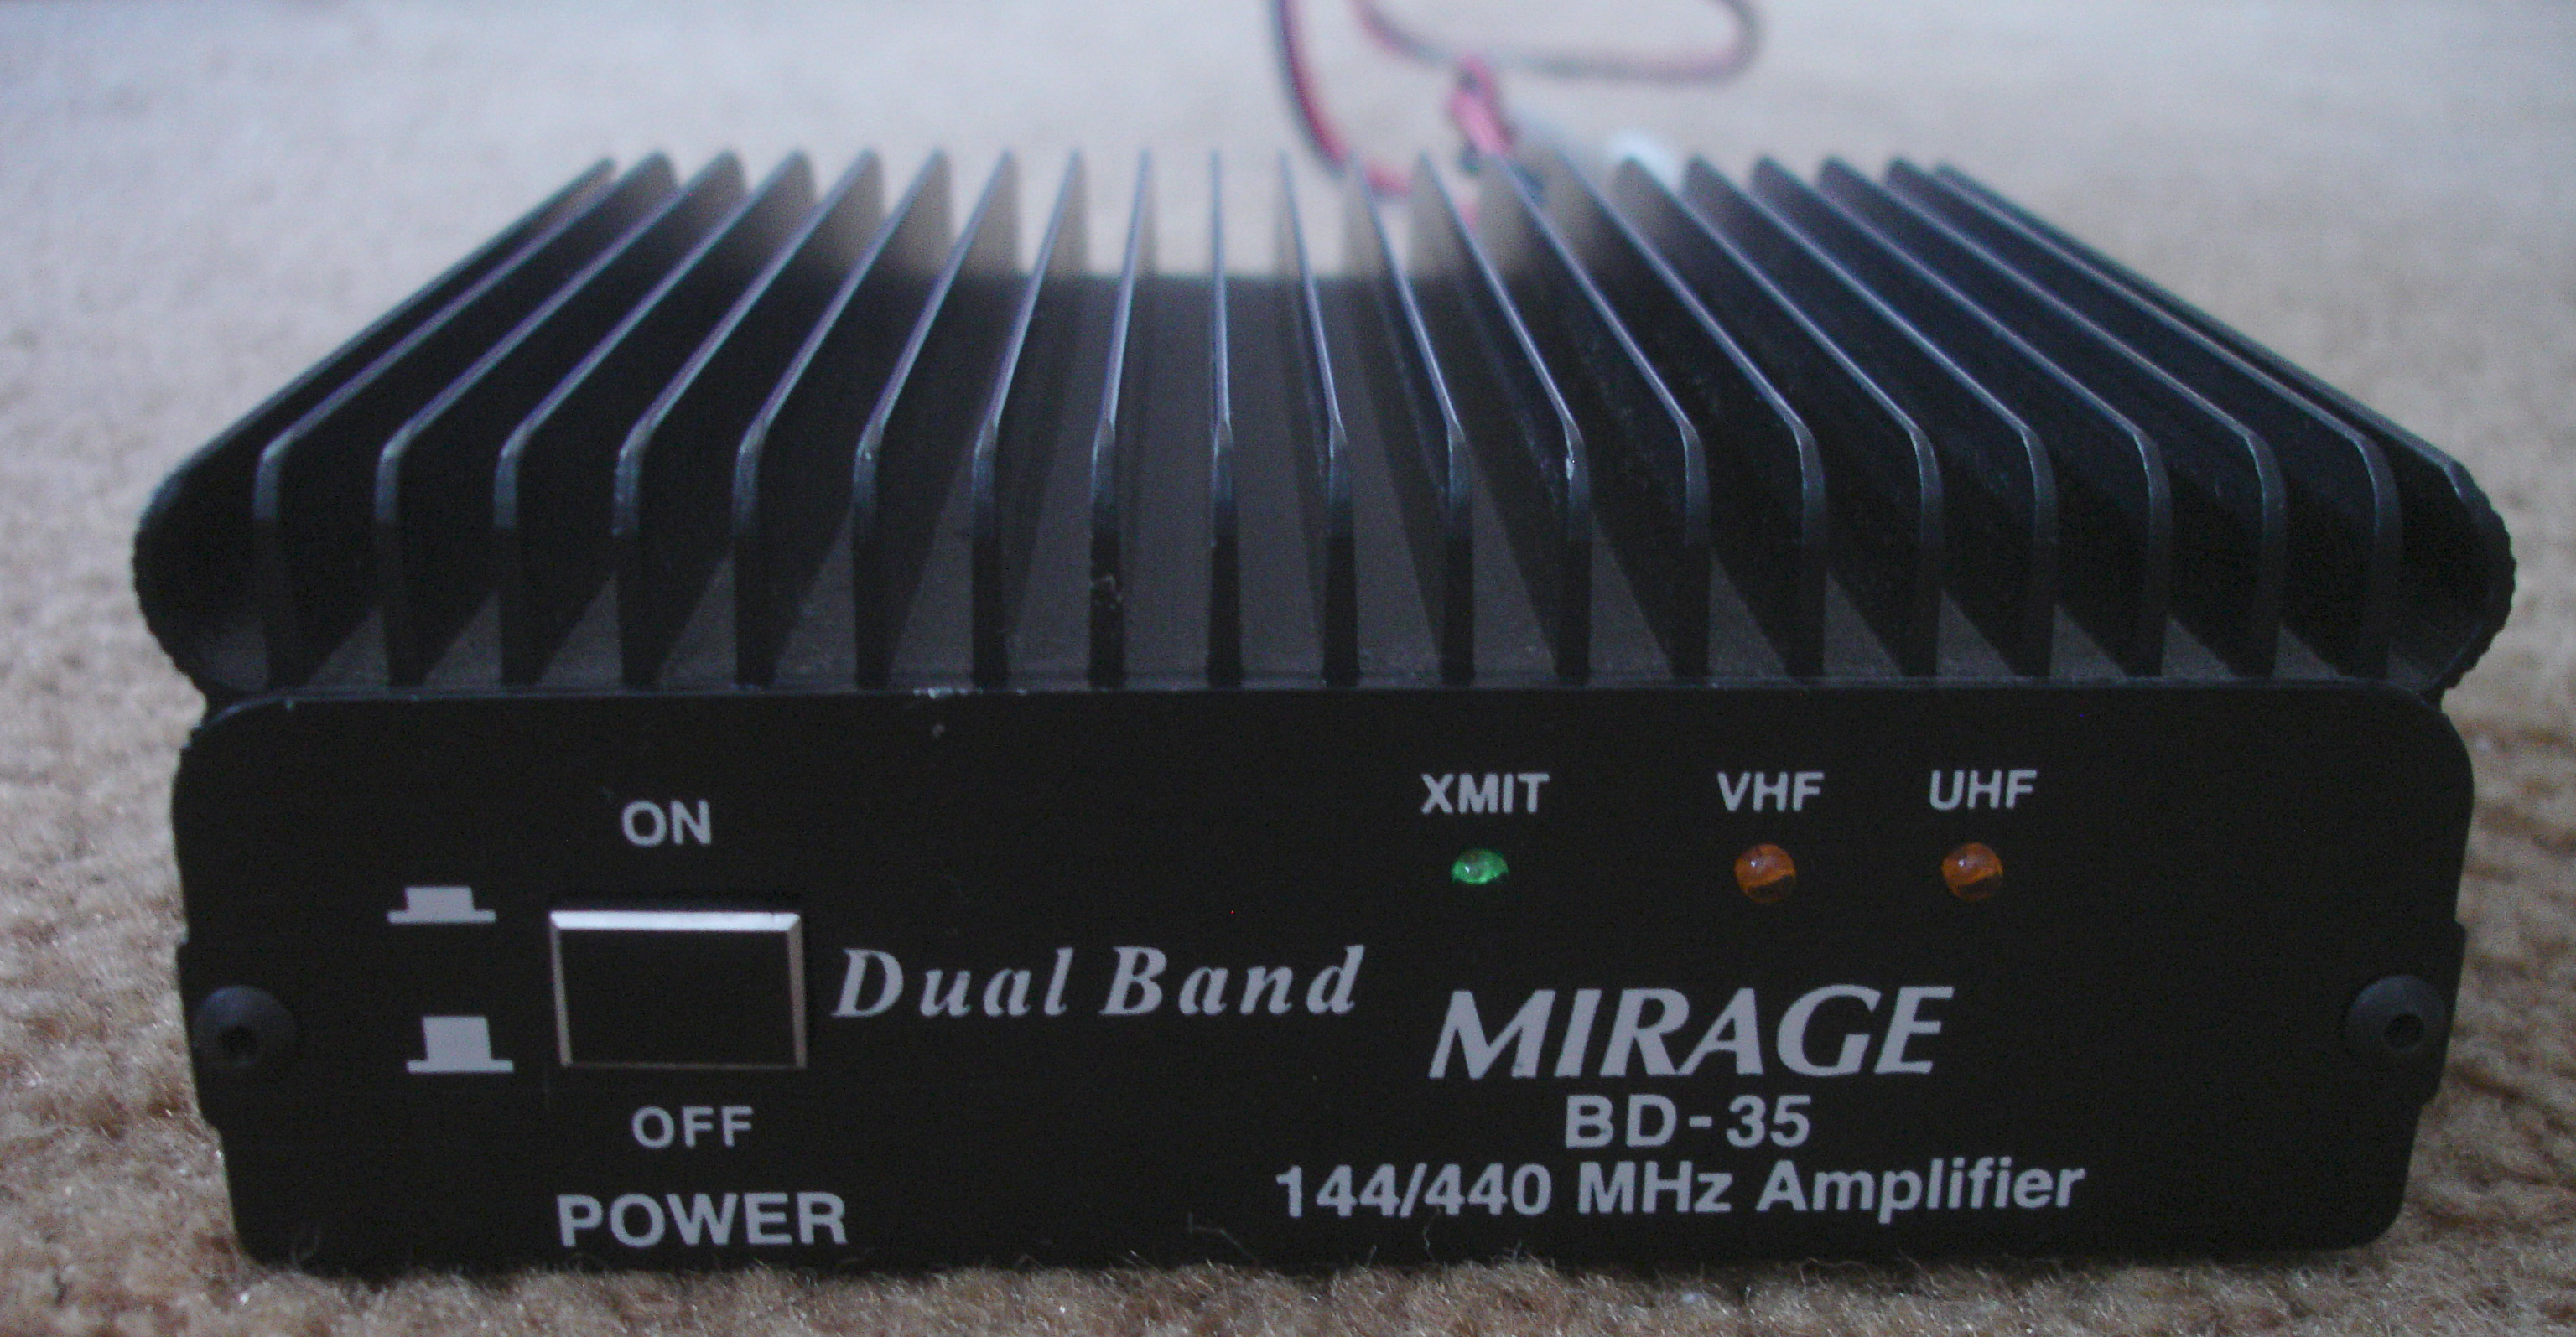 File:Mirage BD-35 amplifier front without 13 8vDC cable jpeg